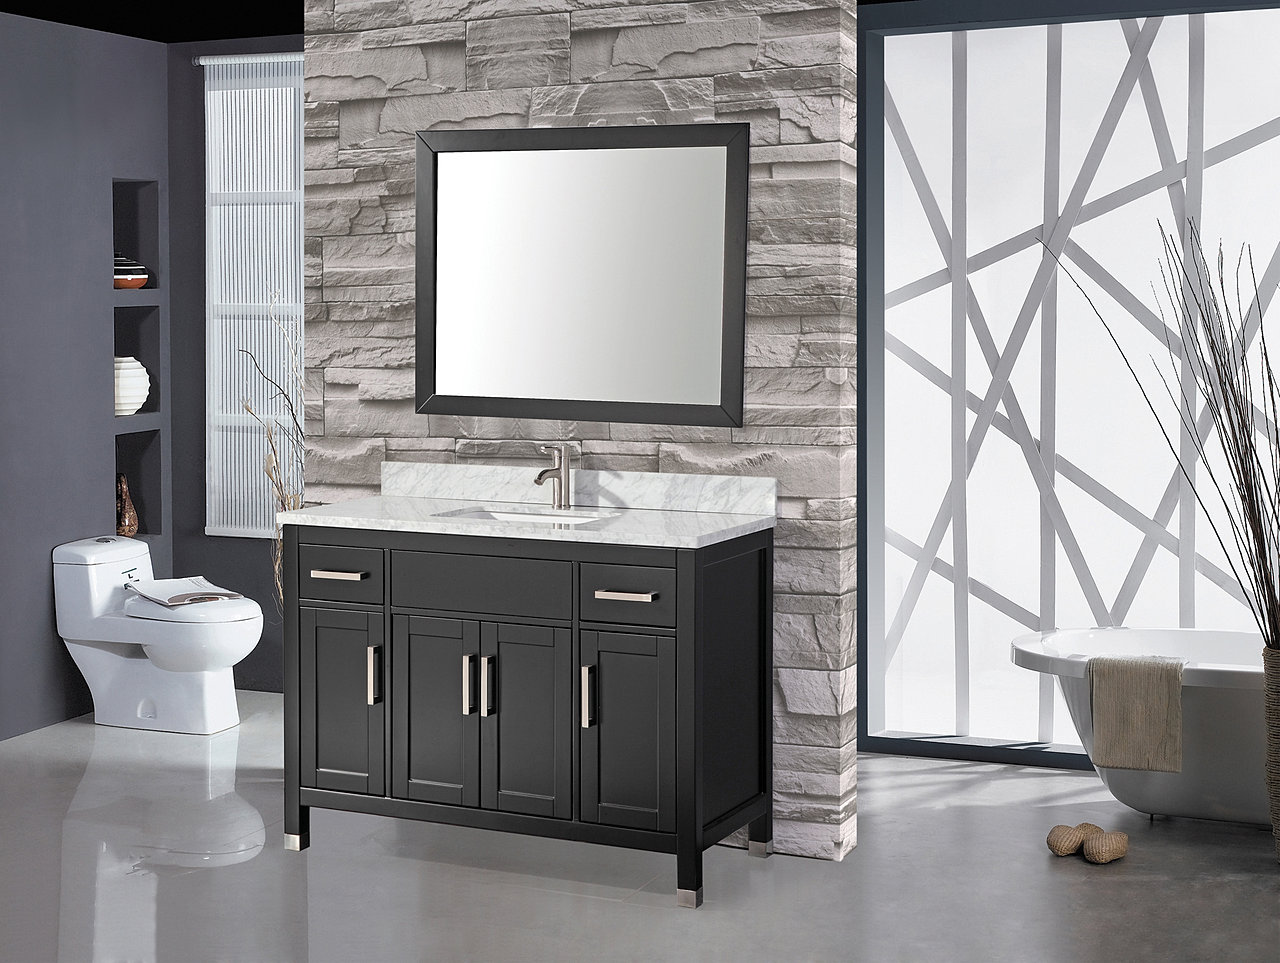 Exceptional Bathroom Vanities Fort Lauderdale #13: 36 Or 48 Carrera Top